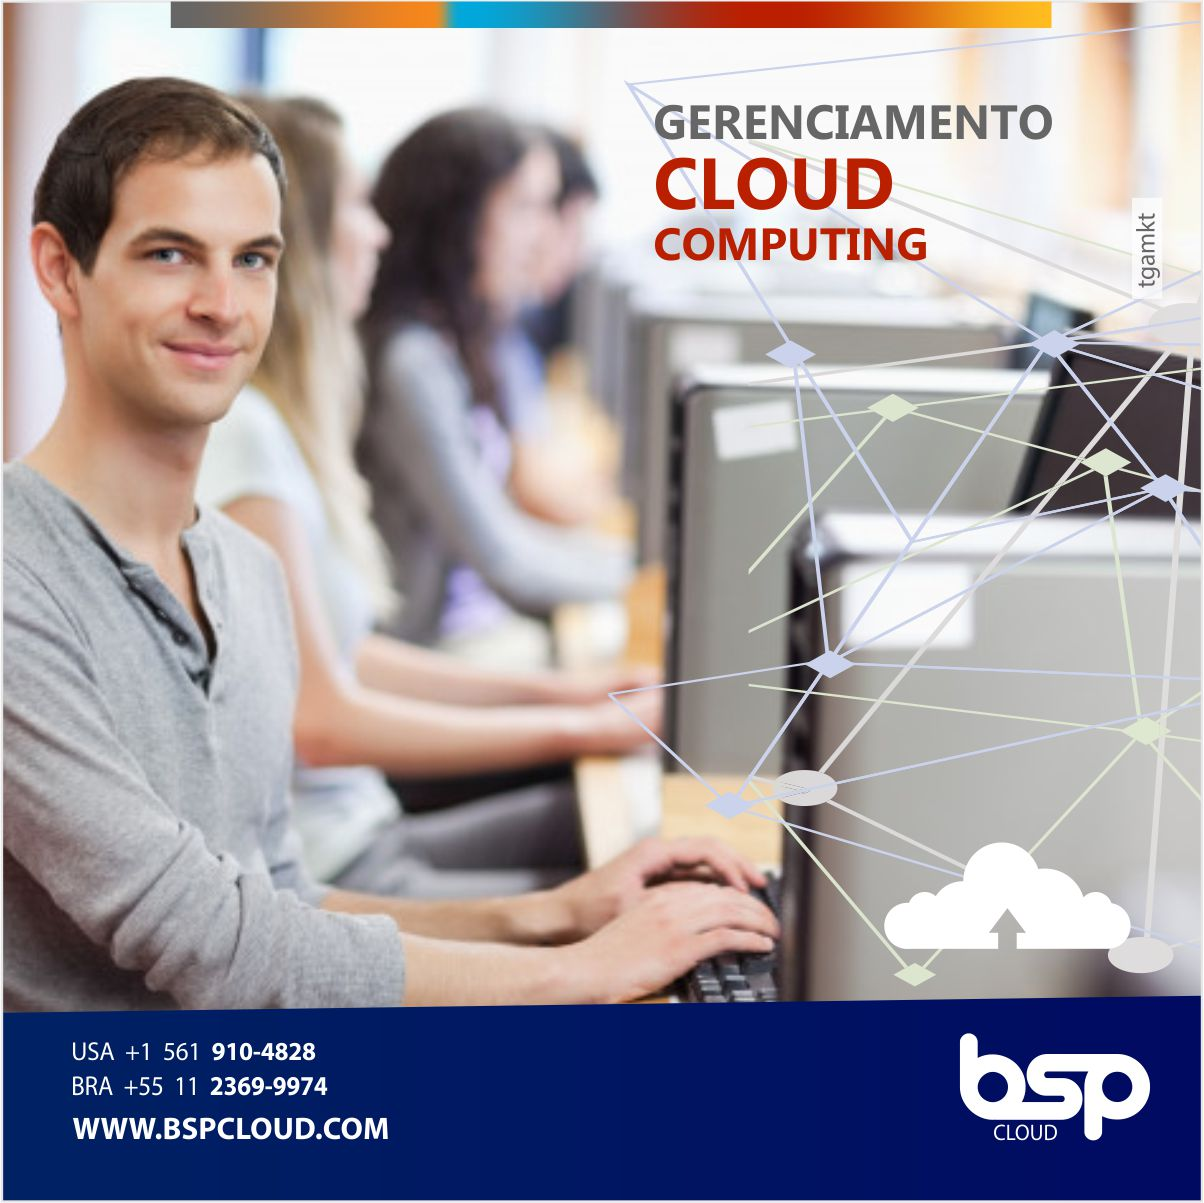 Bsp Cloud Gerenciamento Cloud Computing